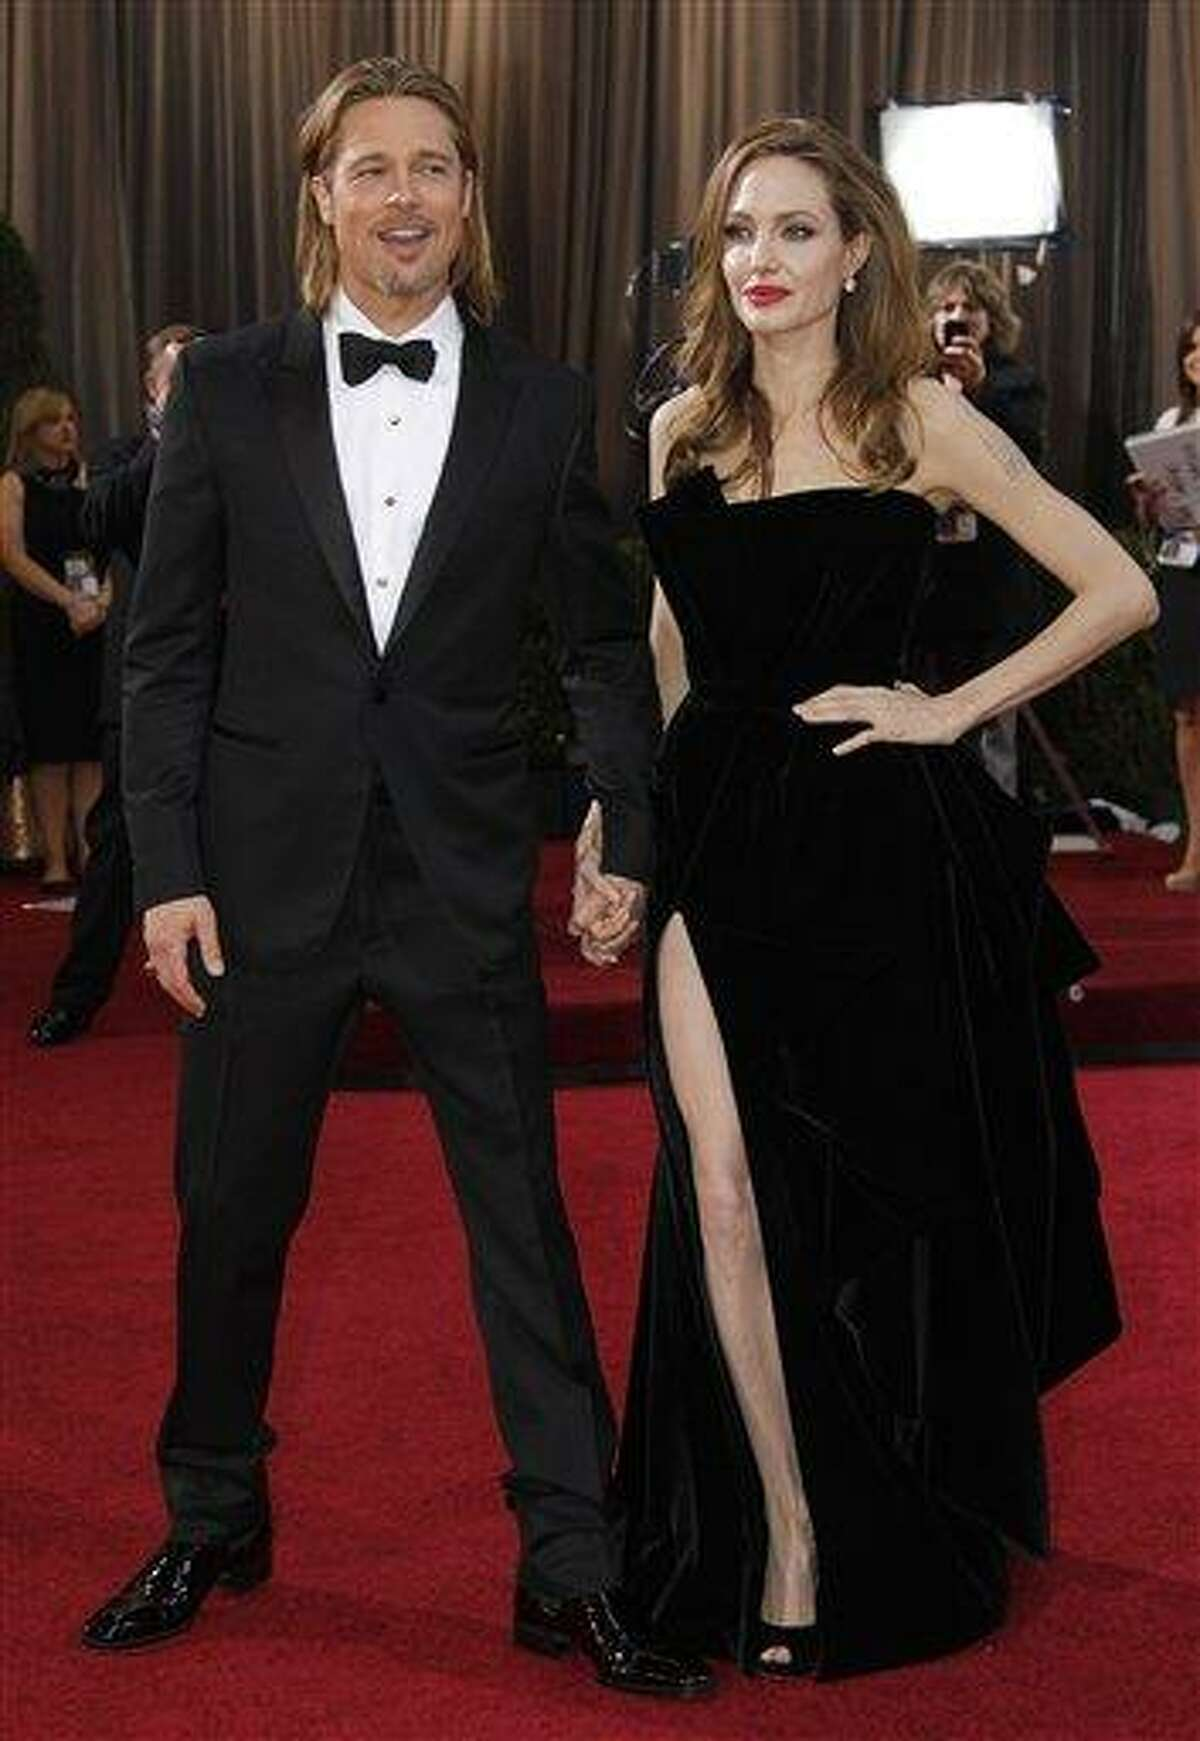 Actress Angelina Jolie, right, and actor Brad Pitt arrive before the 84th Academy Awards Sundayin the Hollywood section of Los Angeles. Associated Press